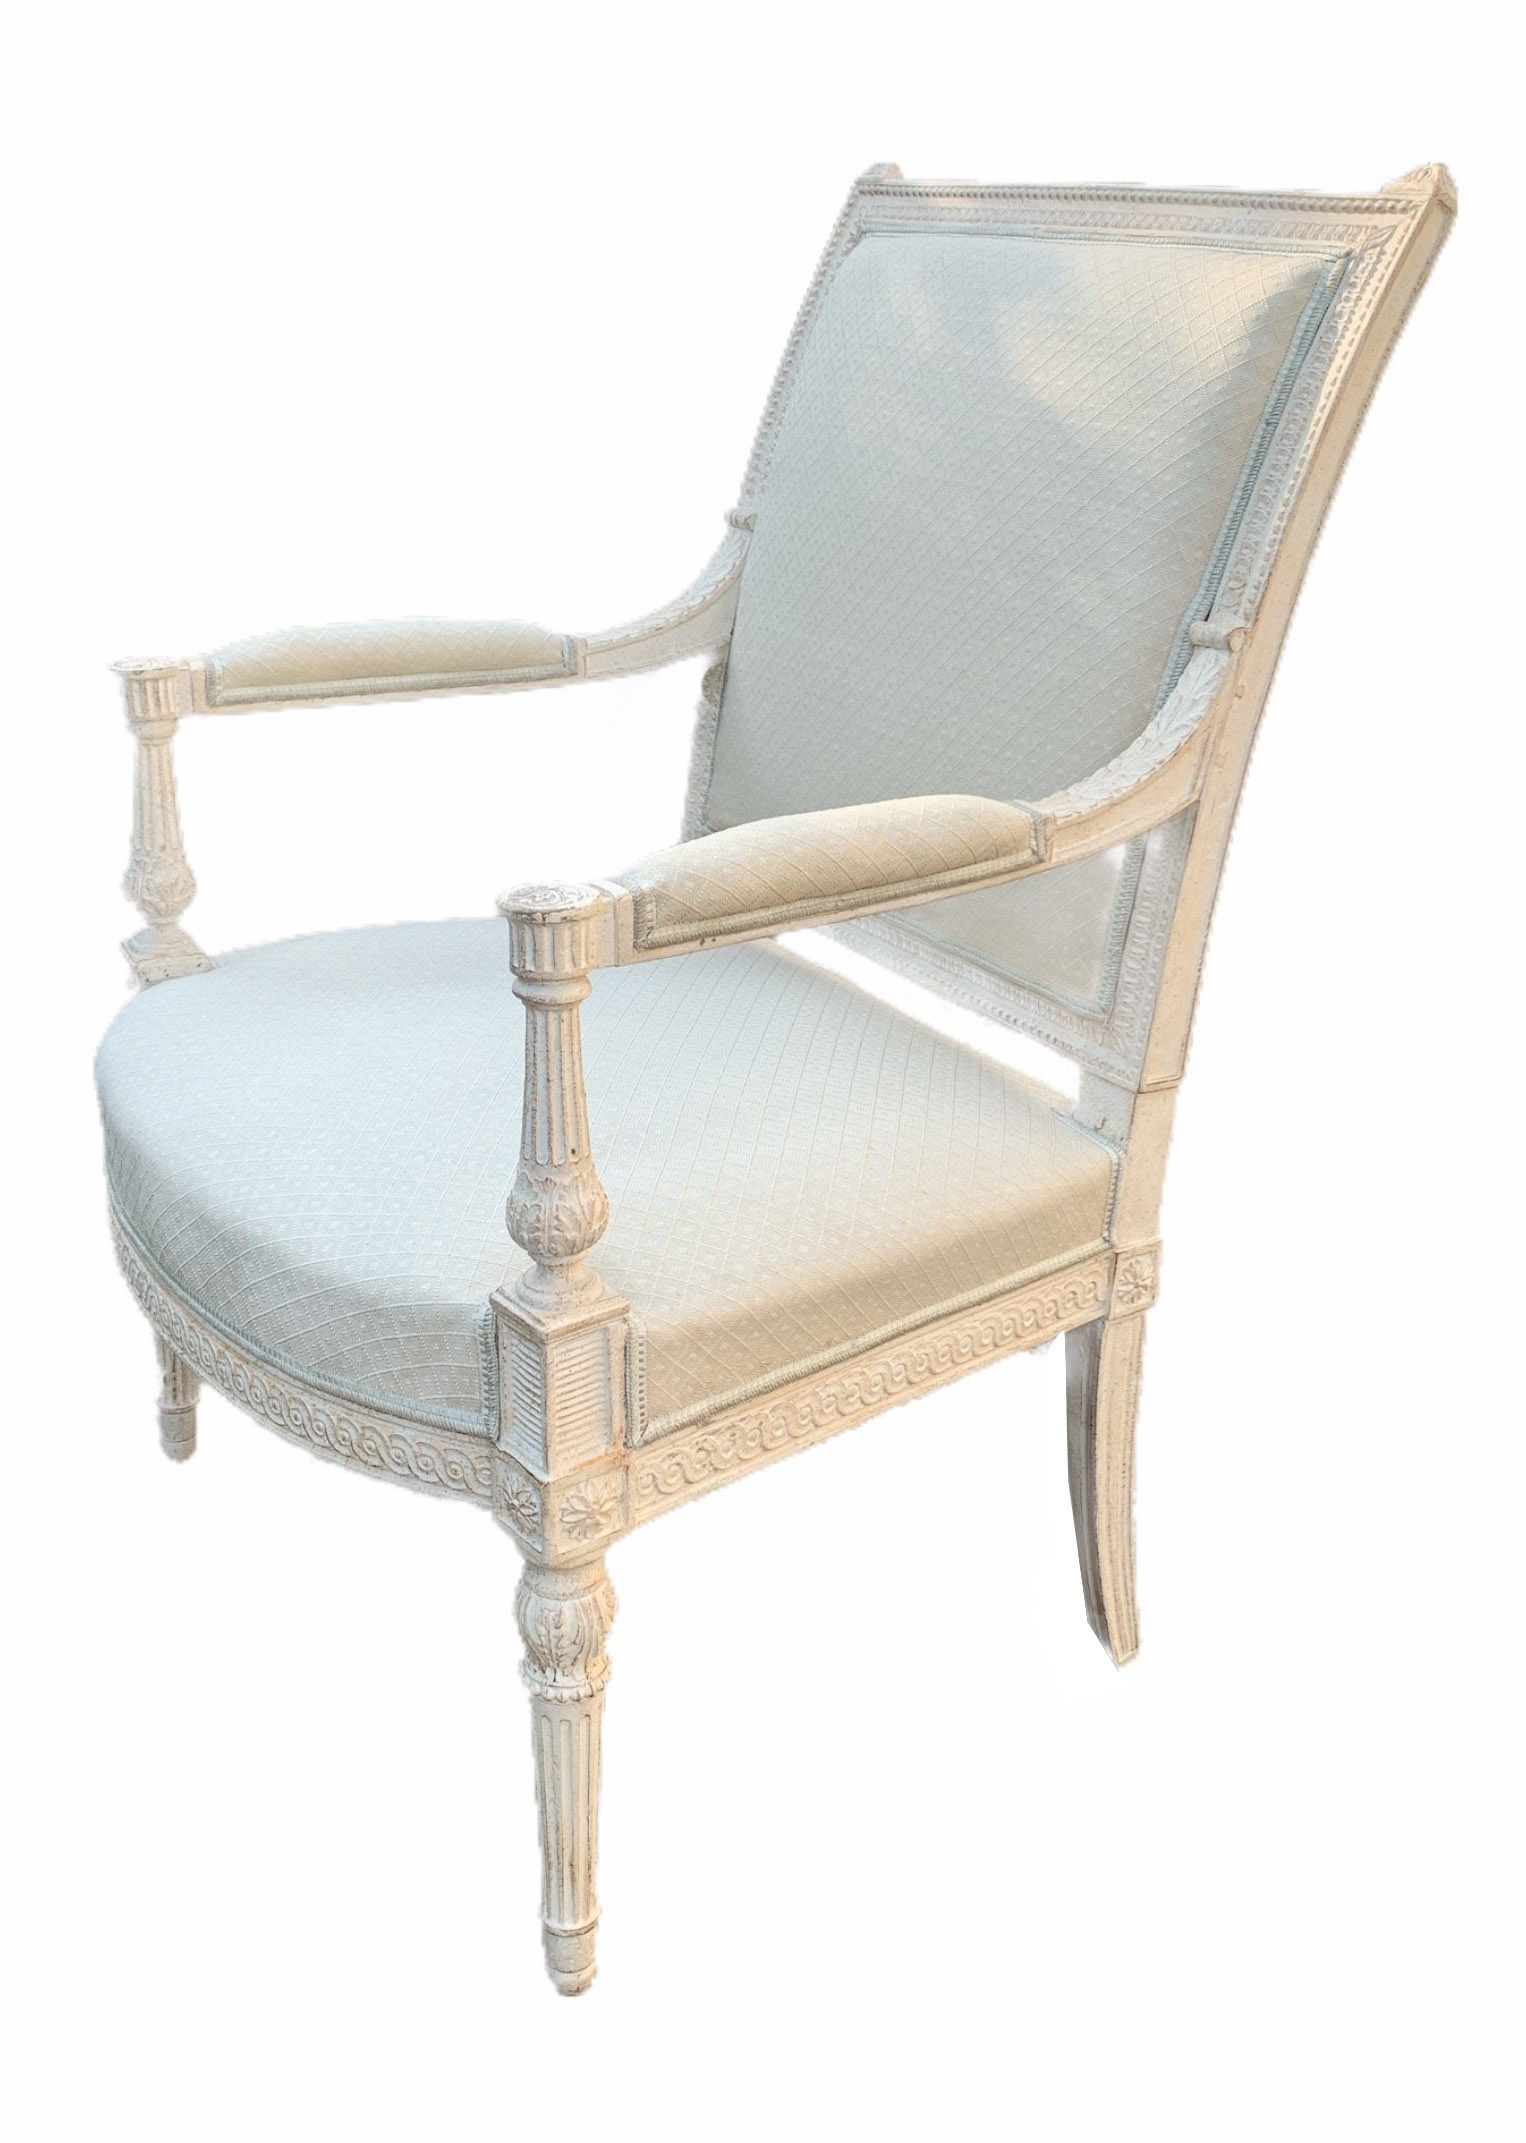 AN 18TH CENTURY LOUIS XVI CARVED WOOD AND PAINTED SALON SUITE Comprising a pair of three seat settee - Image 2 of 12